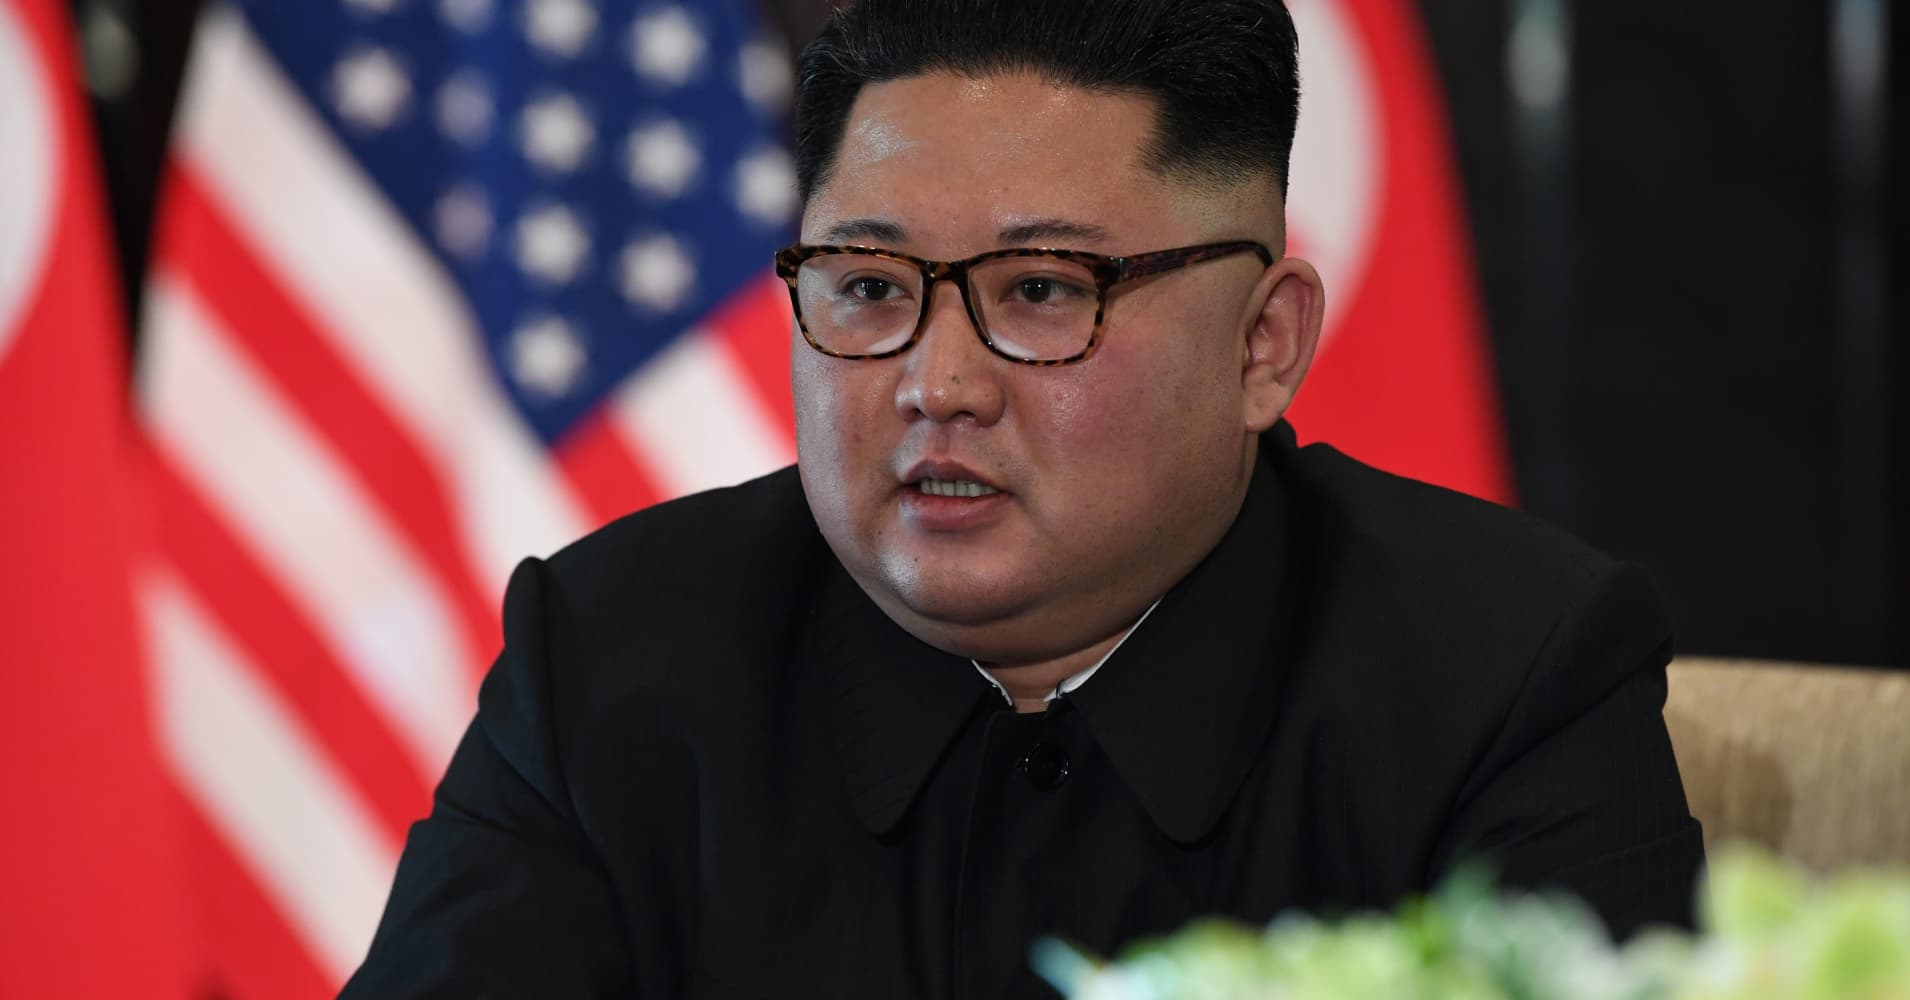 North Korea says it won't denuclearize unless the US removes threat